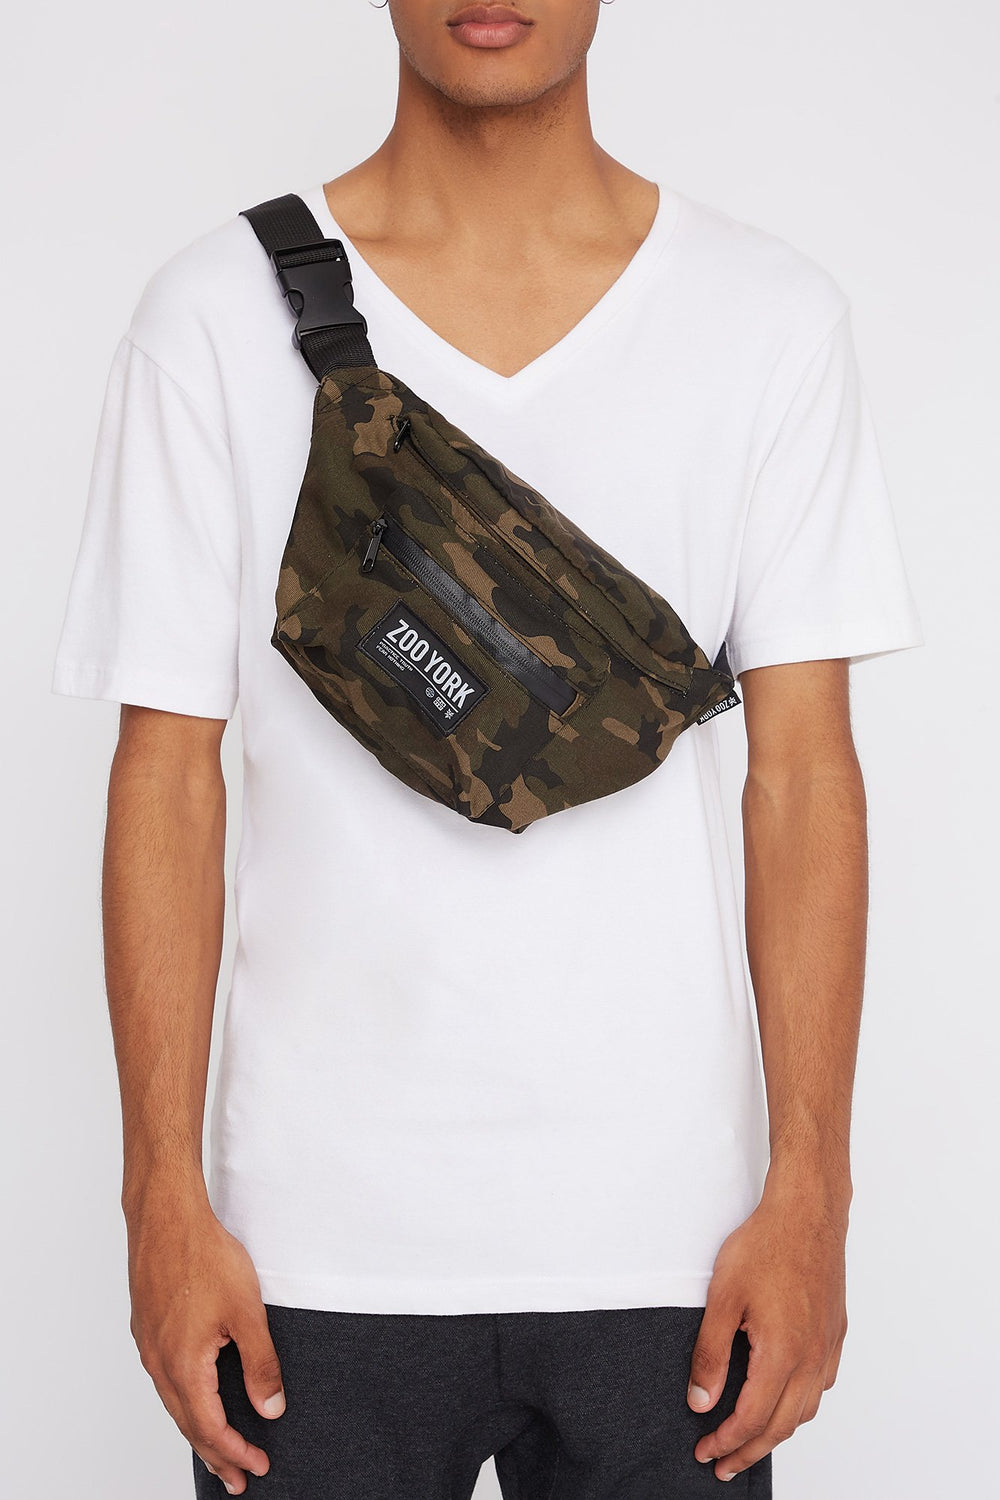 Zoo York Camo Fanny Pack Camouflage